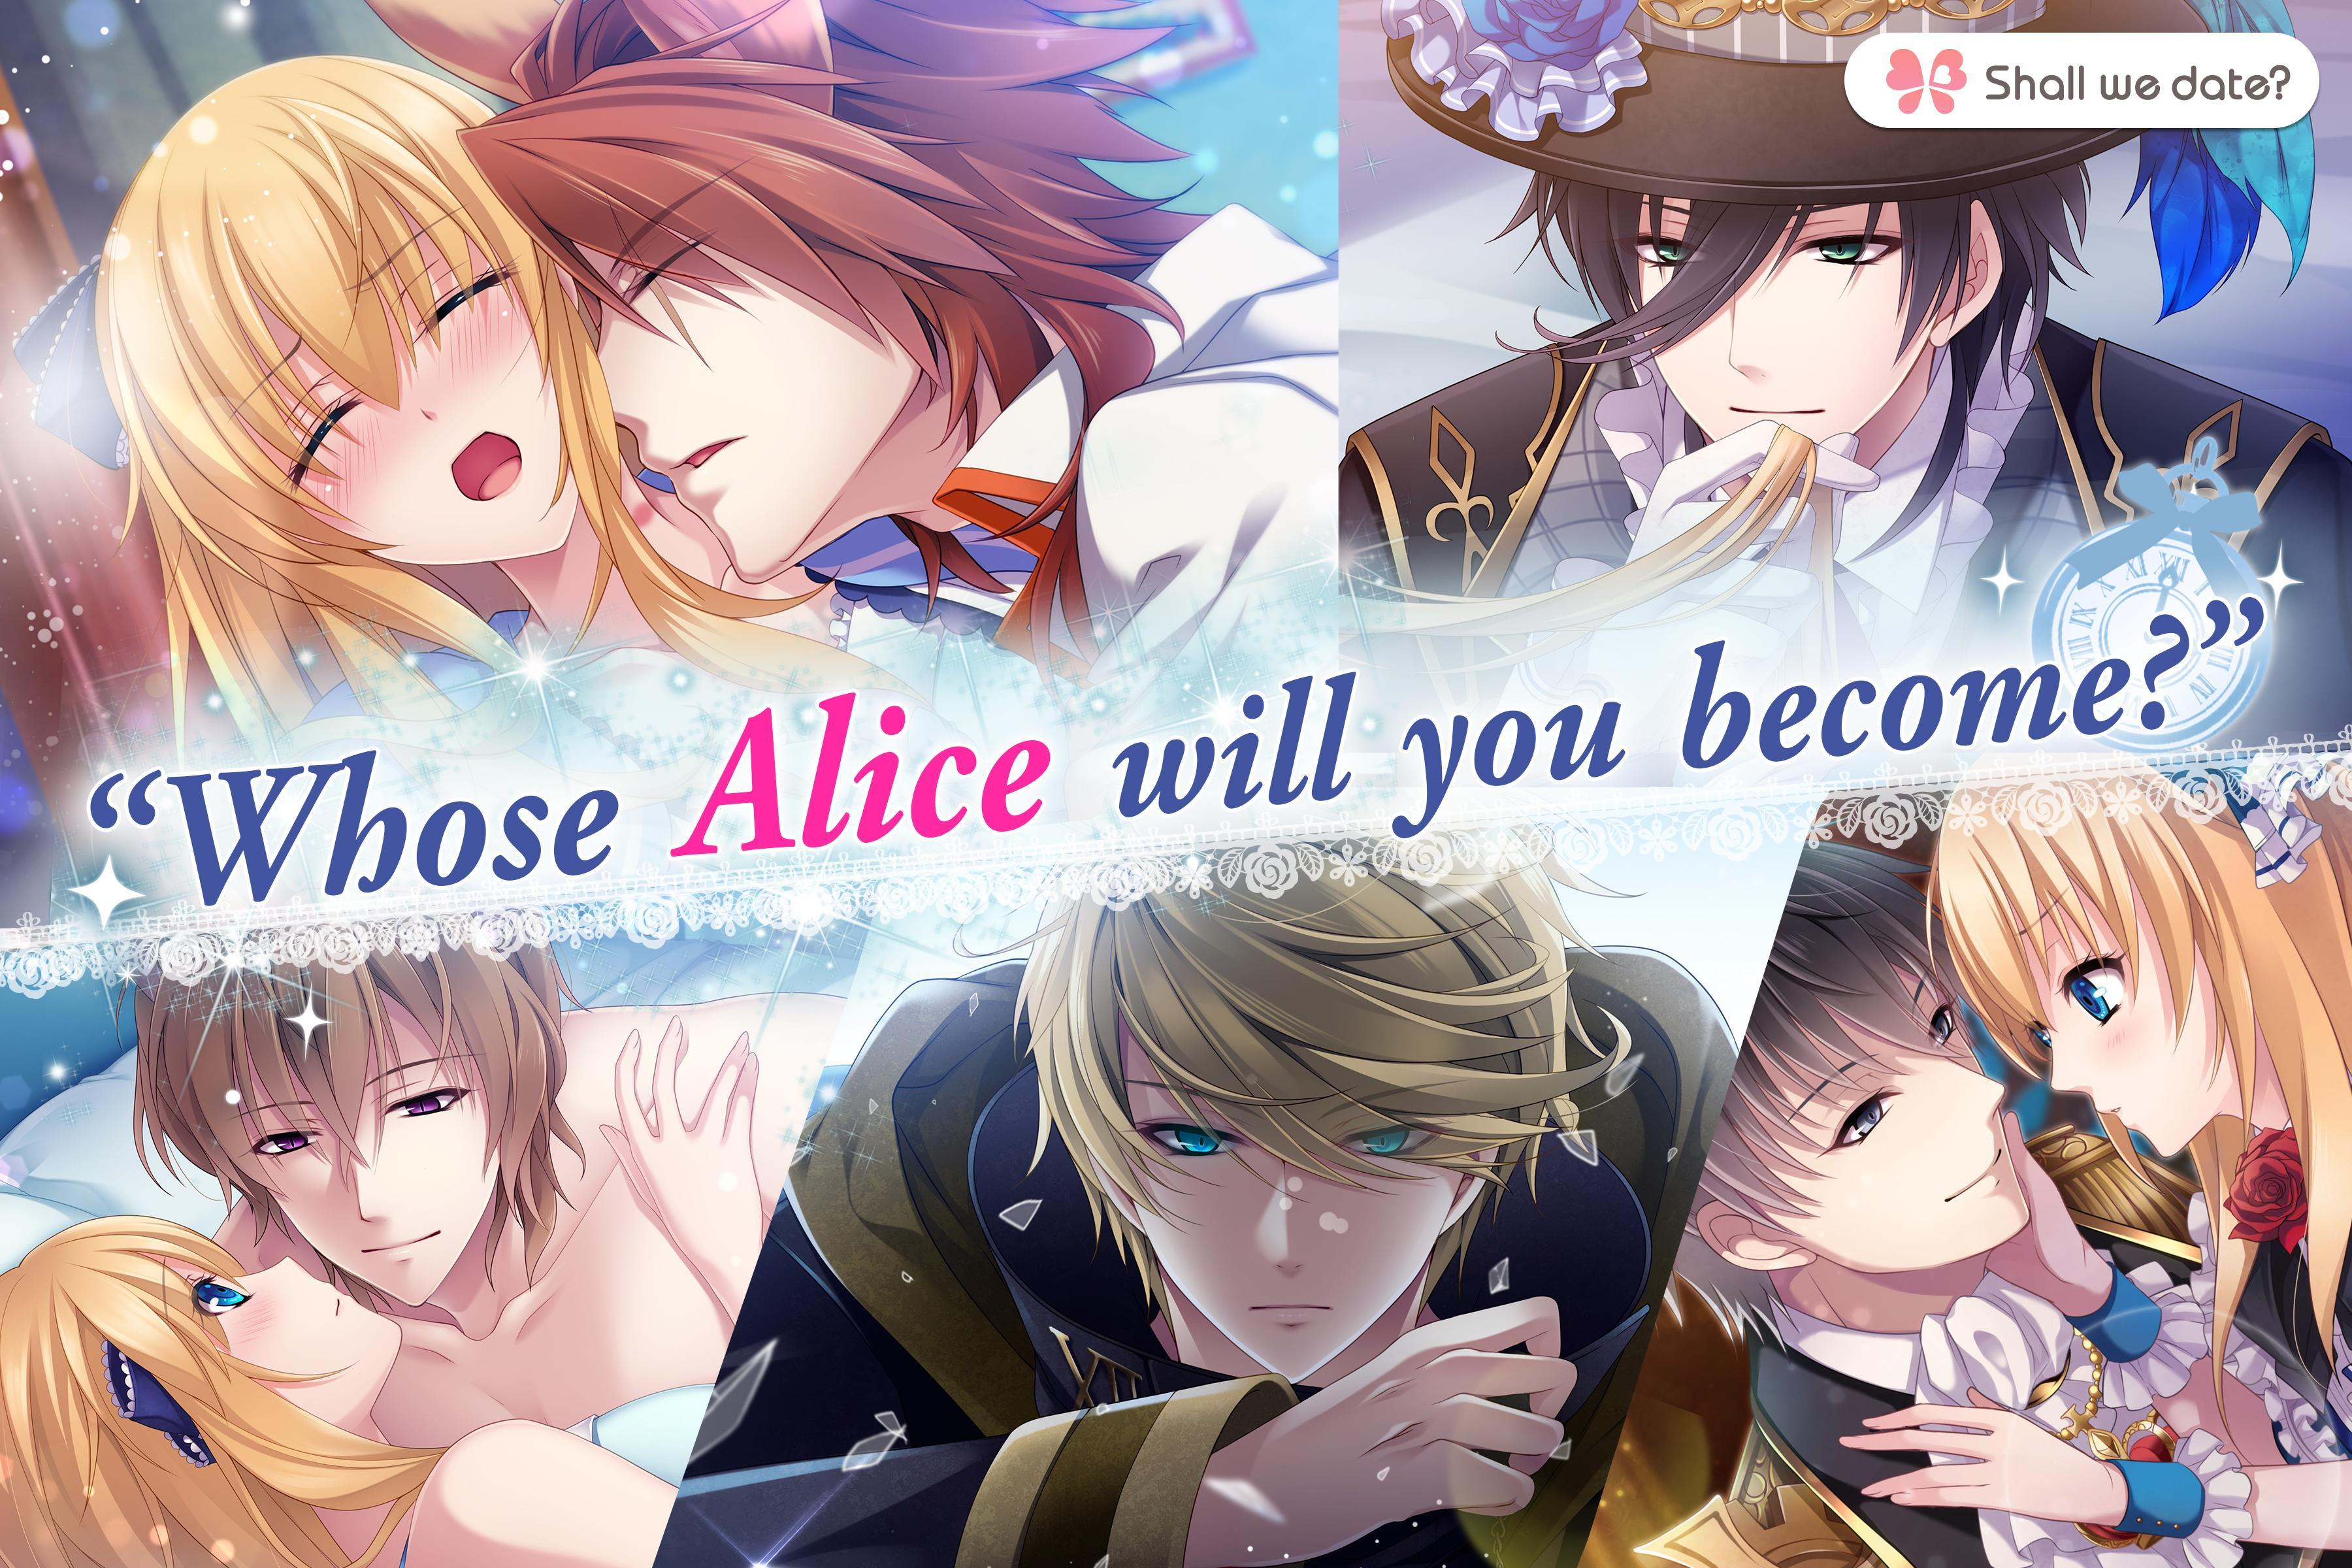 Lost Alice - otome game/dating sim #shall we date 1.5.1 Screenshot 1